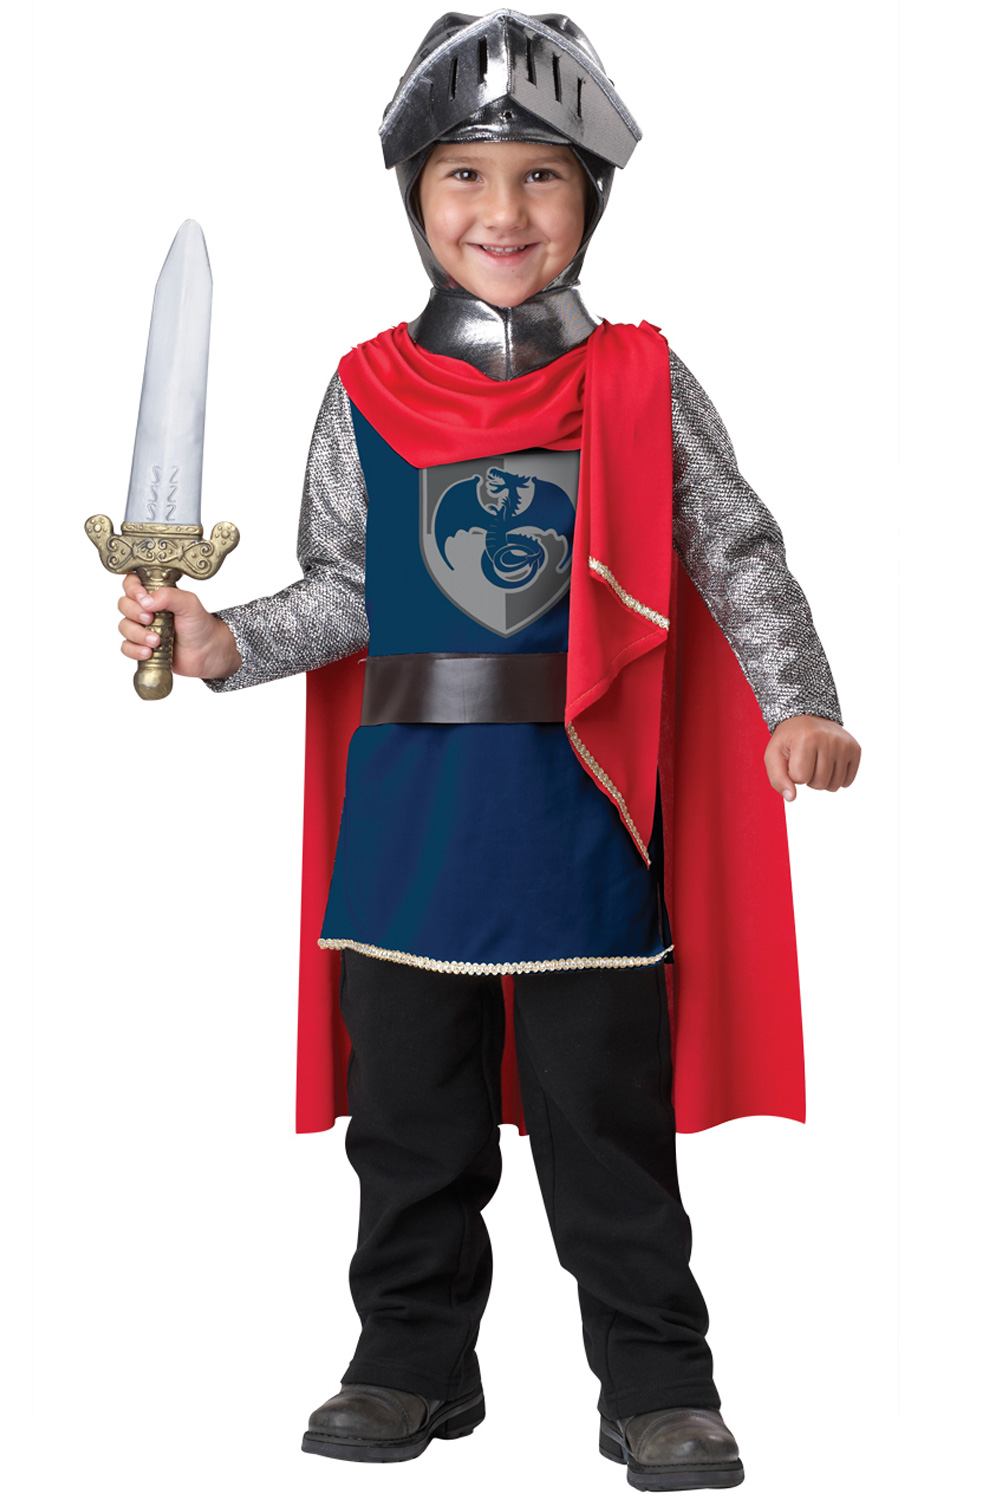 Gallant Knight Toddler Costume - Pure Costumes